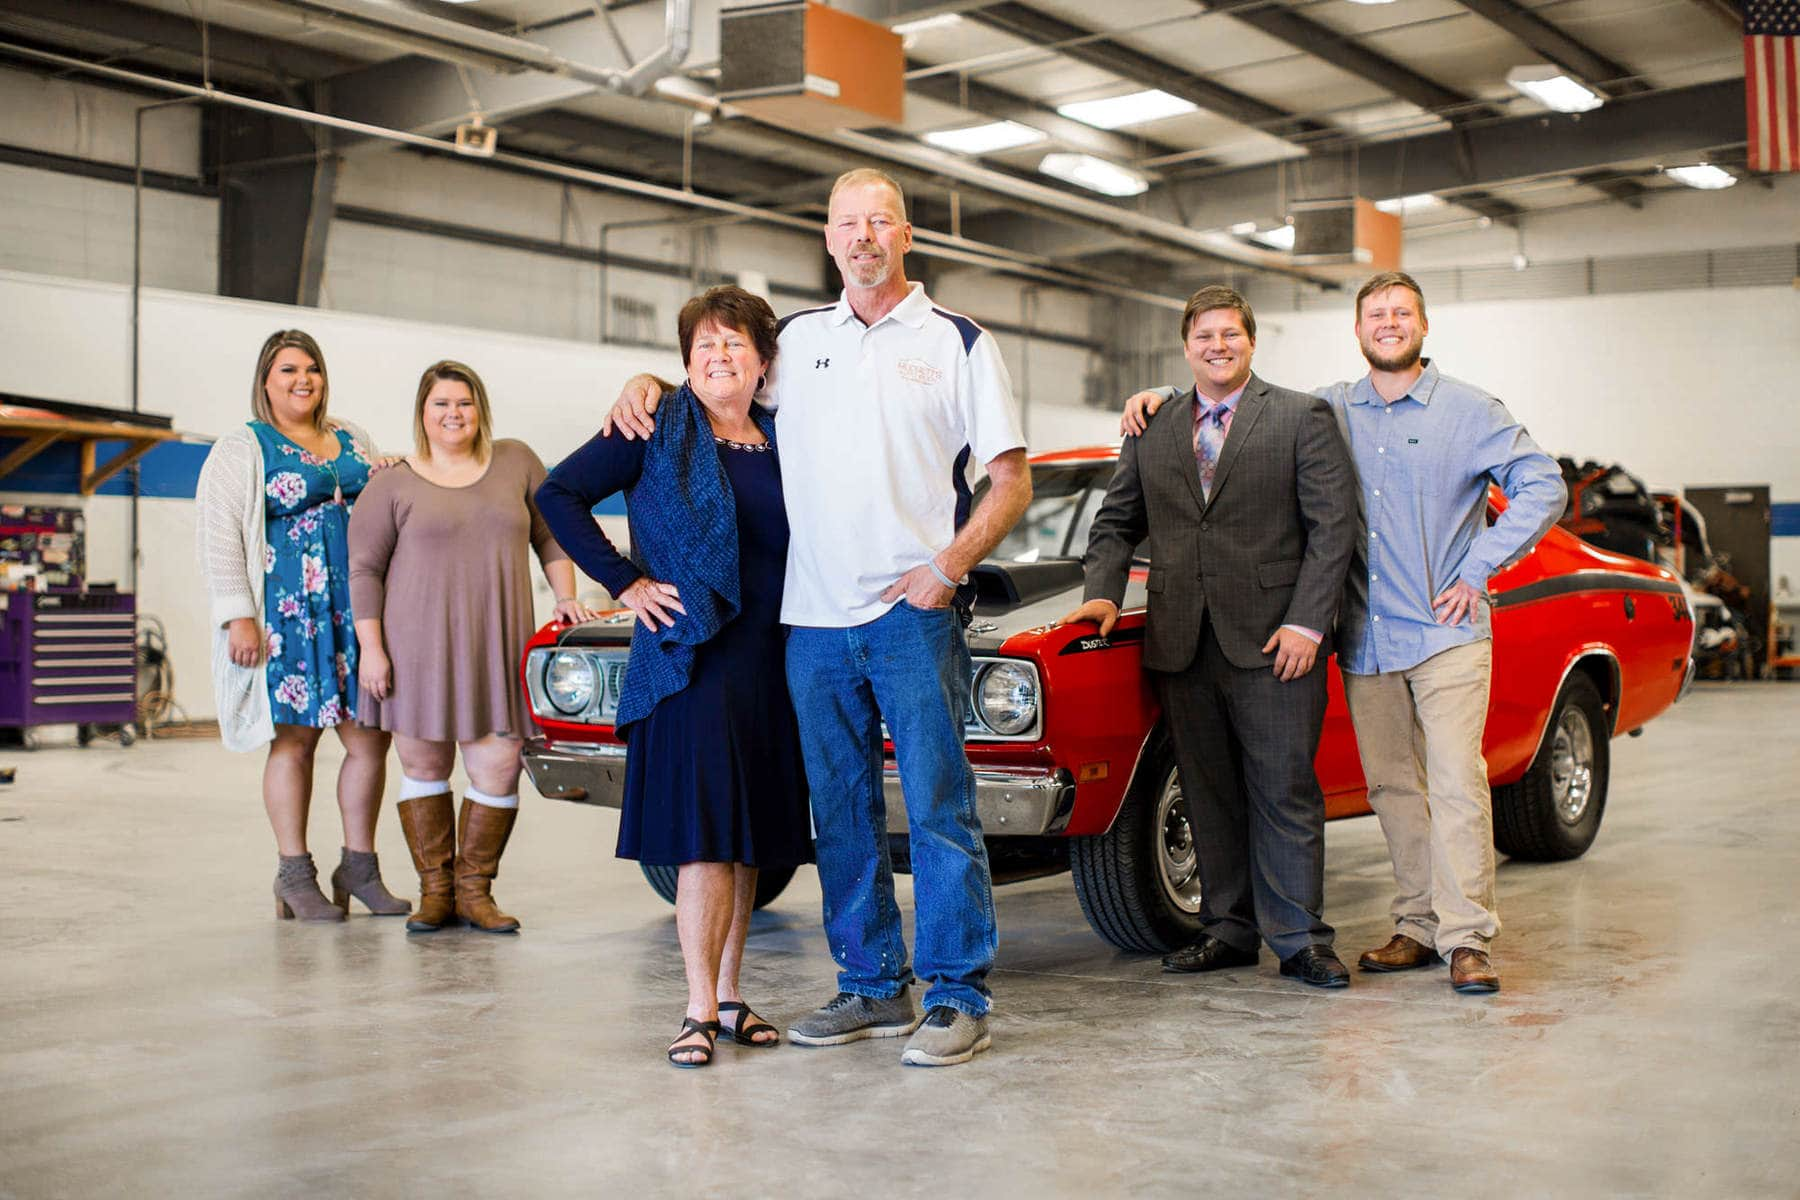 Mudgett's Auto Body Team Portrait by Kelly Heck Photography Finksburg Maryland